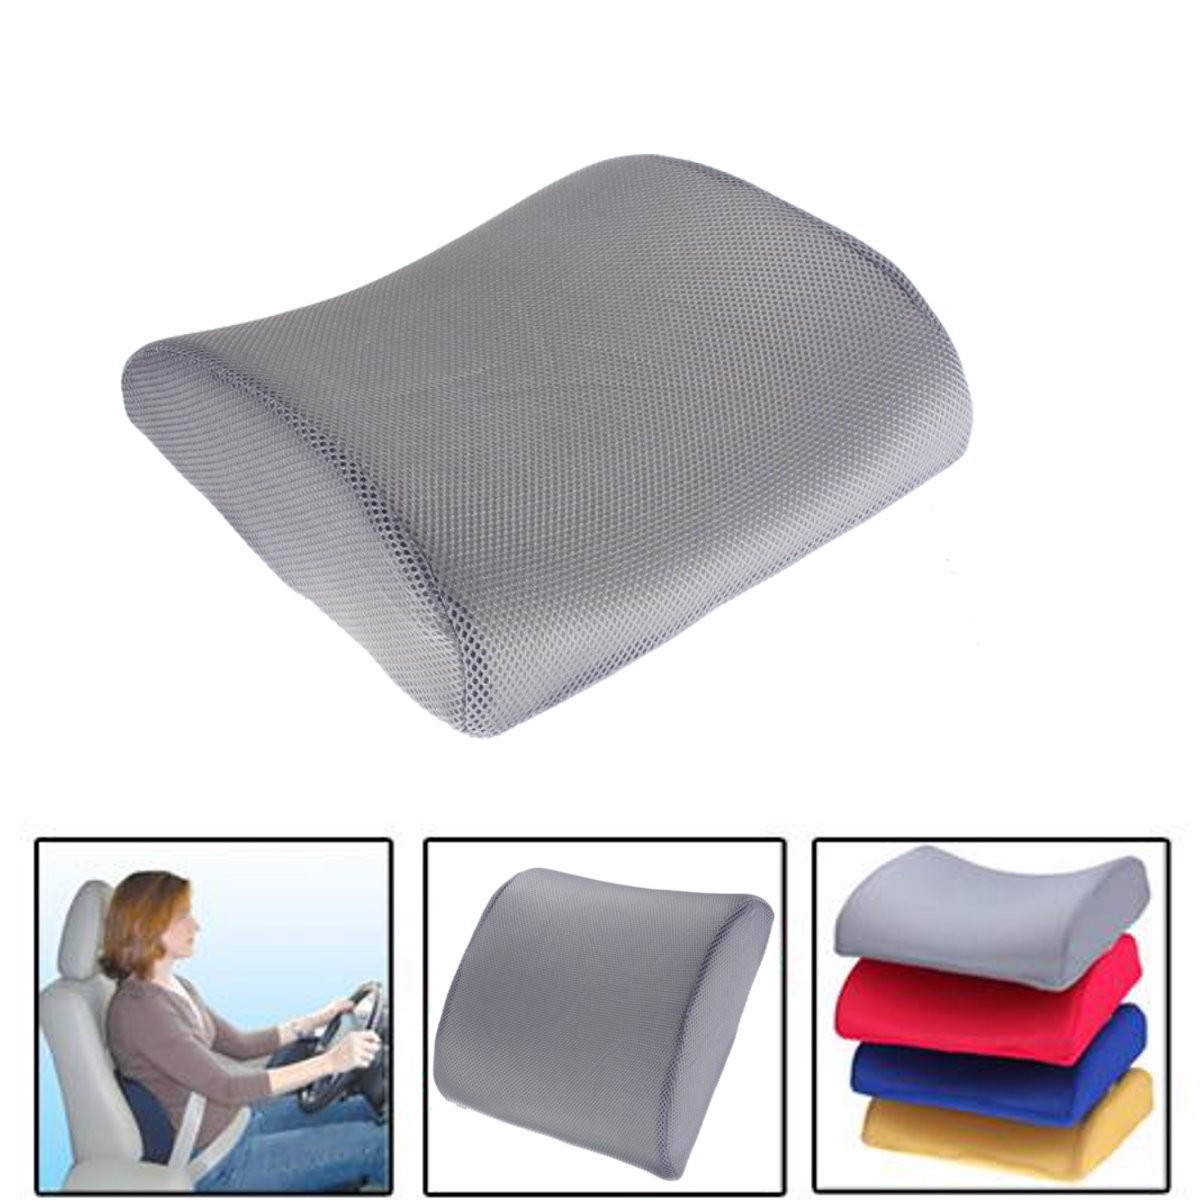 back pillow for office chair positive posture massage reviews memory foam lumbar support cushion